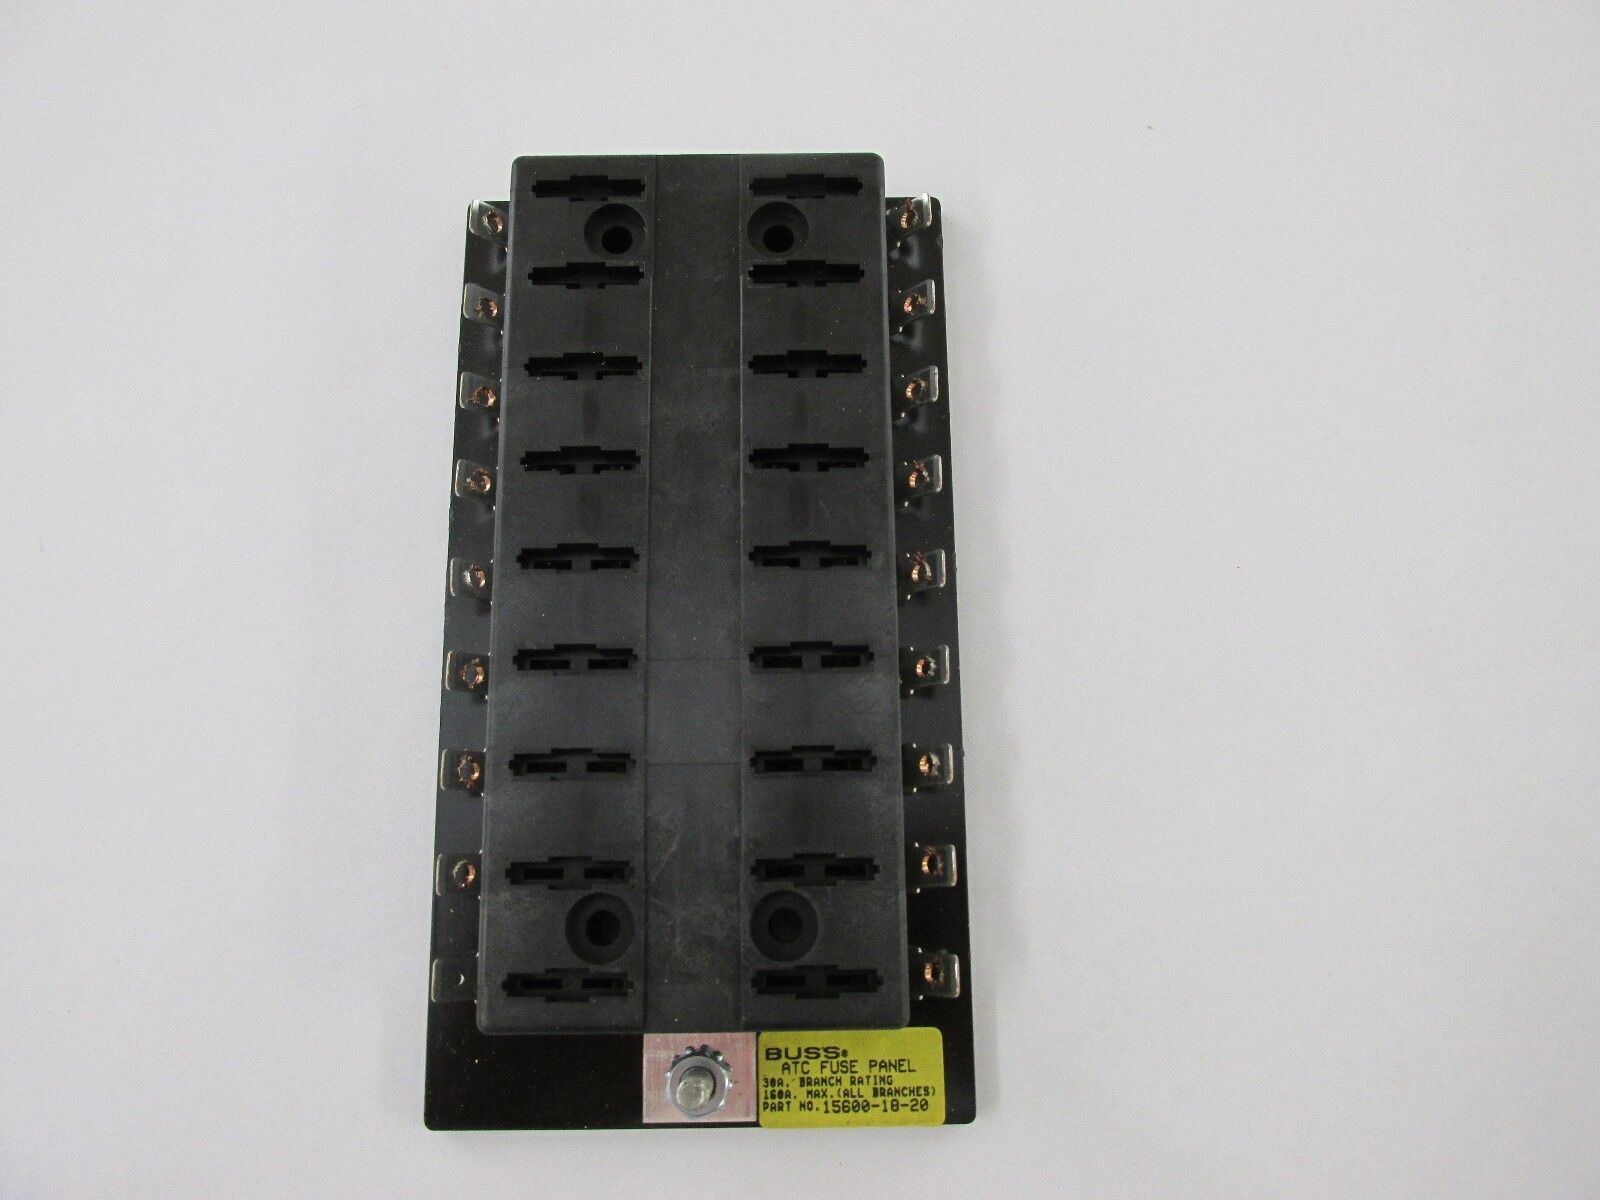 hight resolution of mod bussmann 15600 18 20 18 position atc fuse panel block rv trailer boat solar for sale online ebay